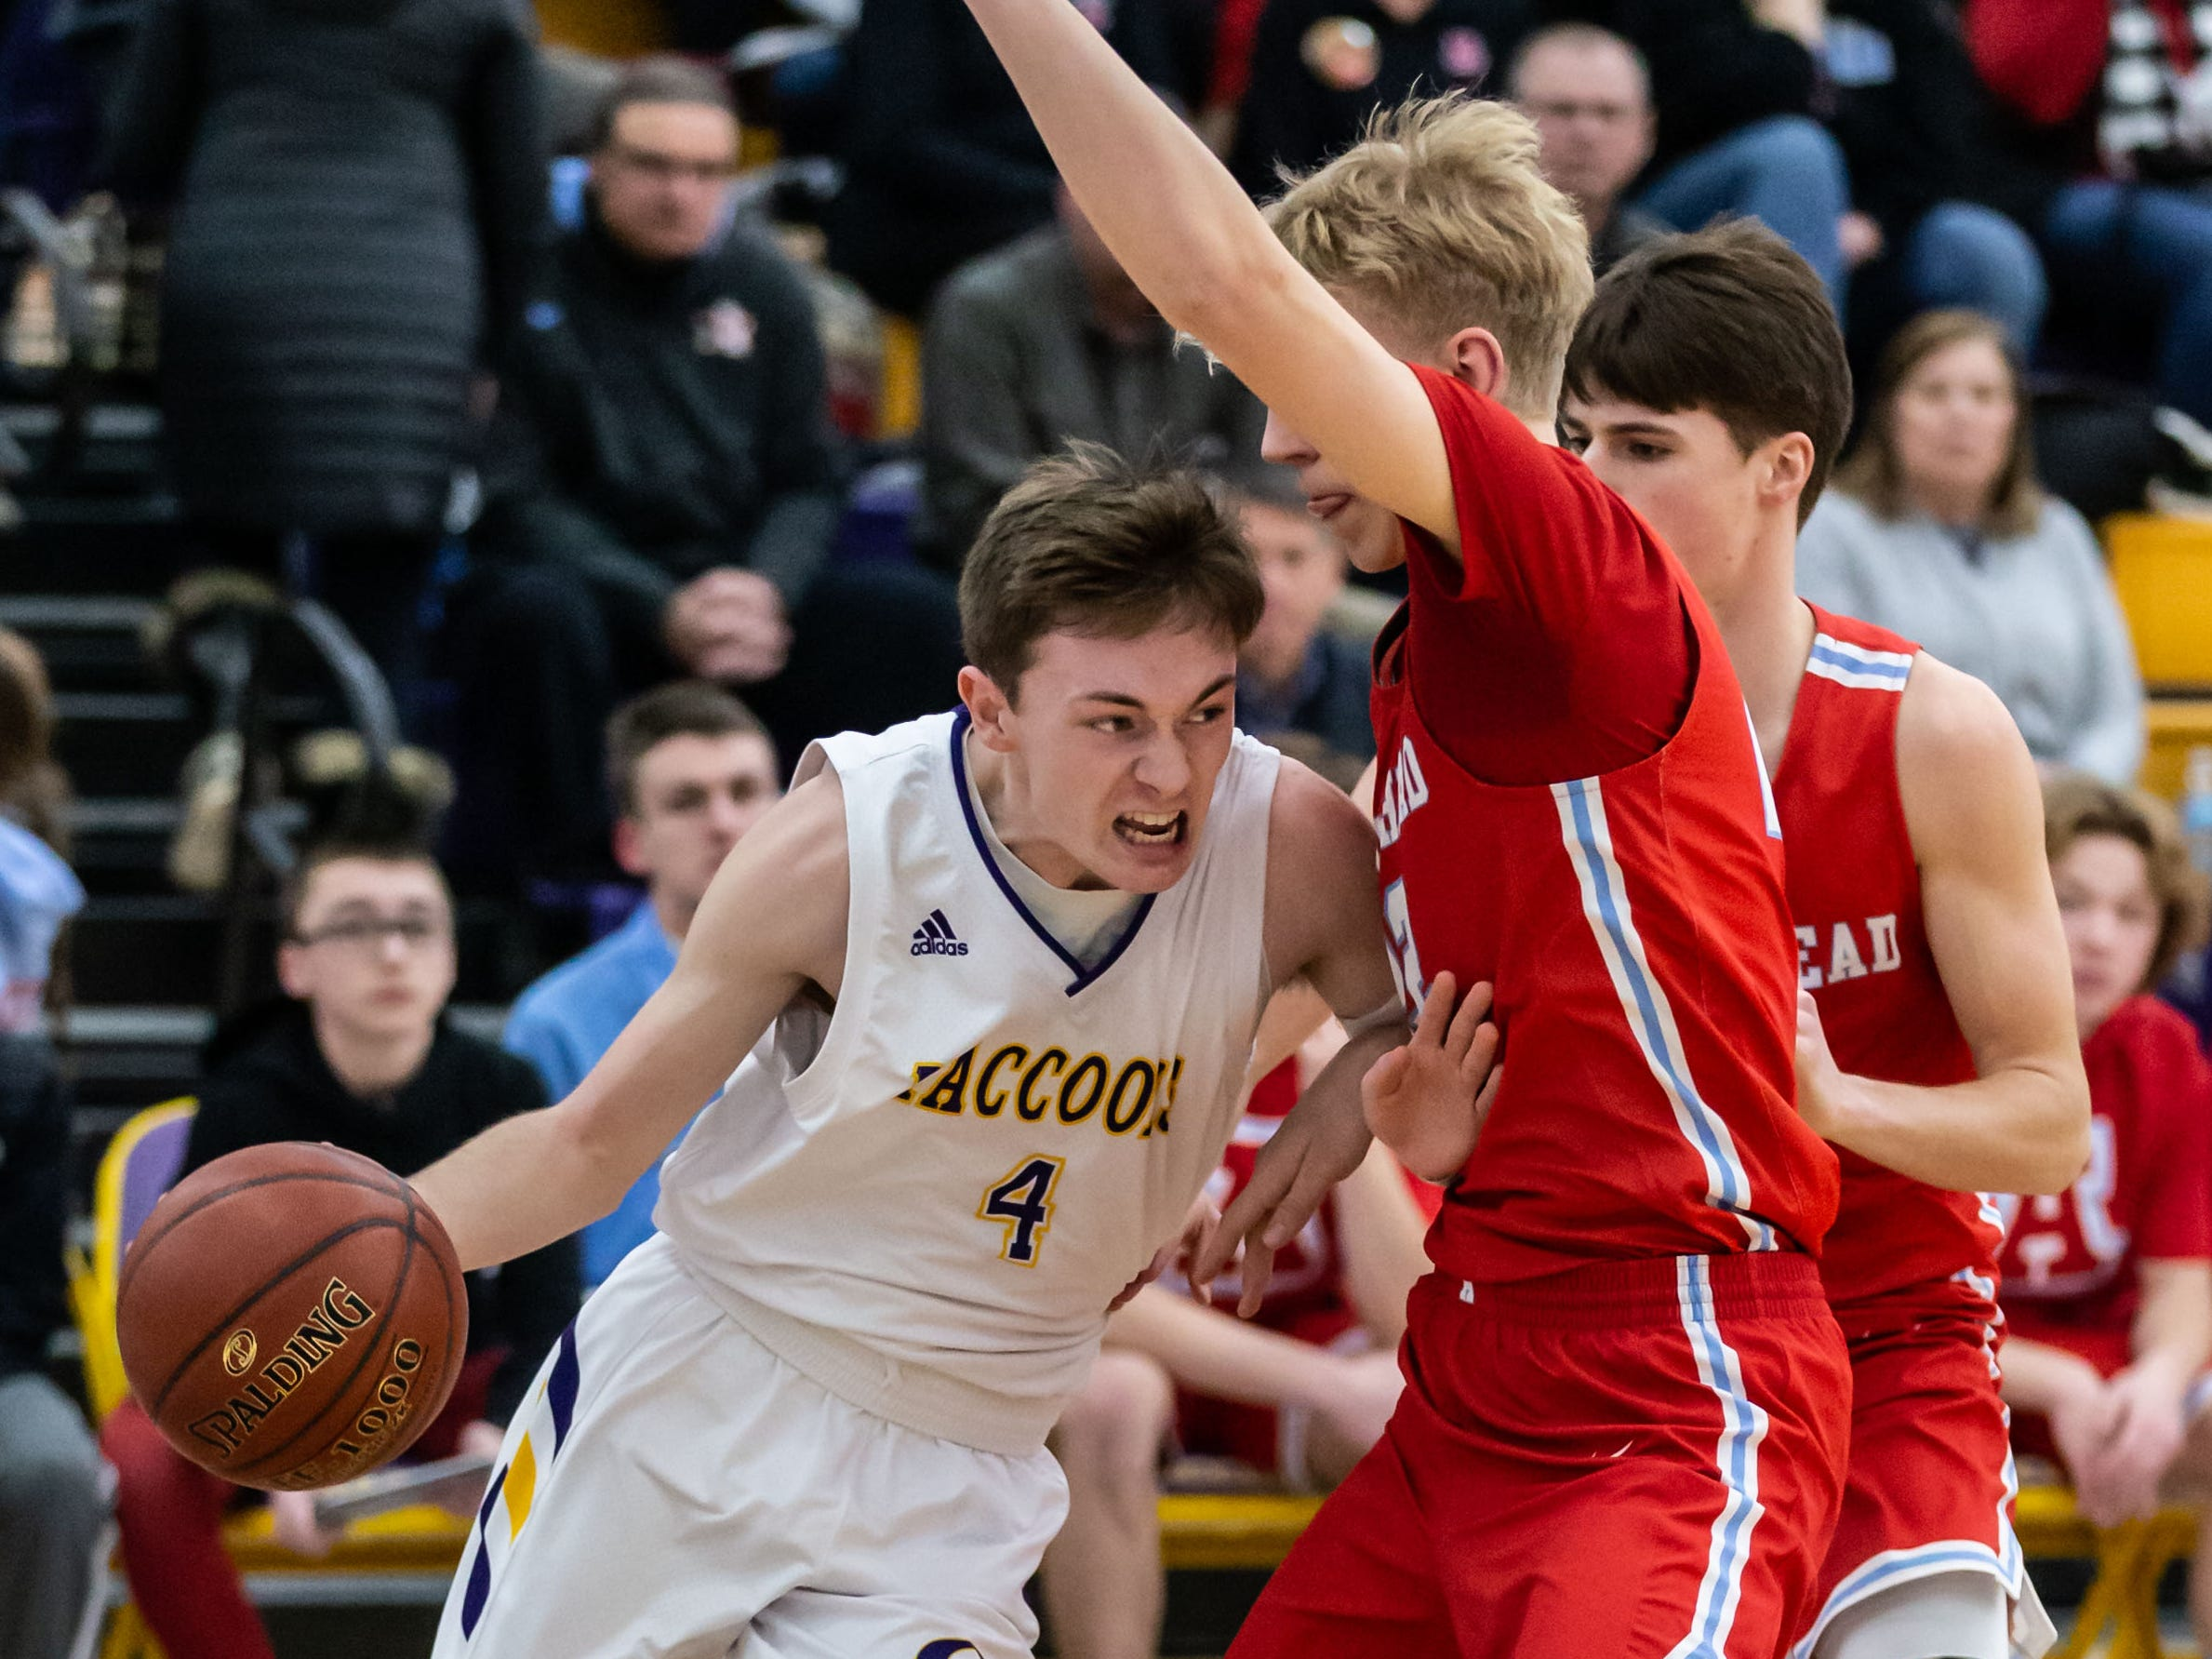 Oconomowoc's Connor Enright (4) battles past Arrowhead's Sam Hytinen (22) during the game at Oconomowoc on Tuesday, Jan. 29, 2019.